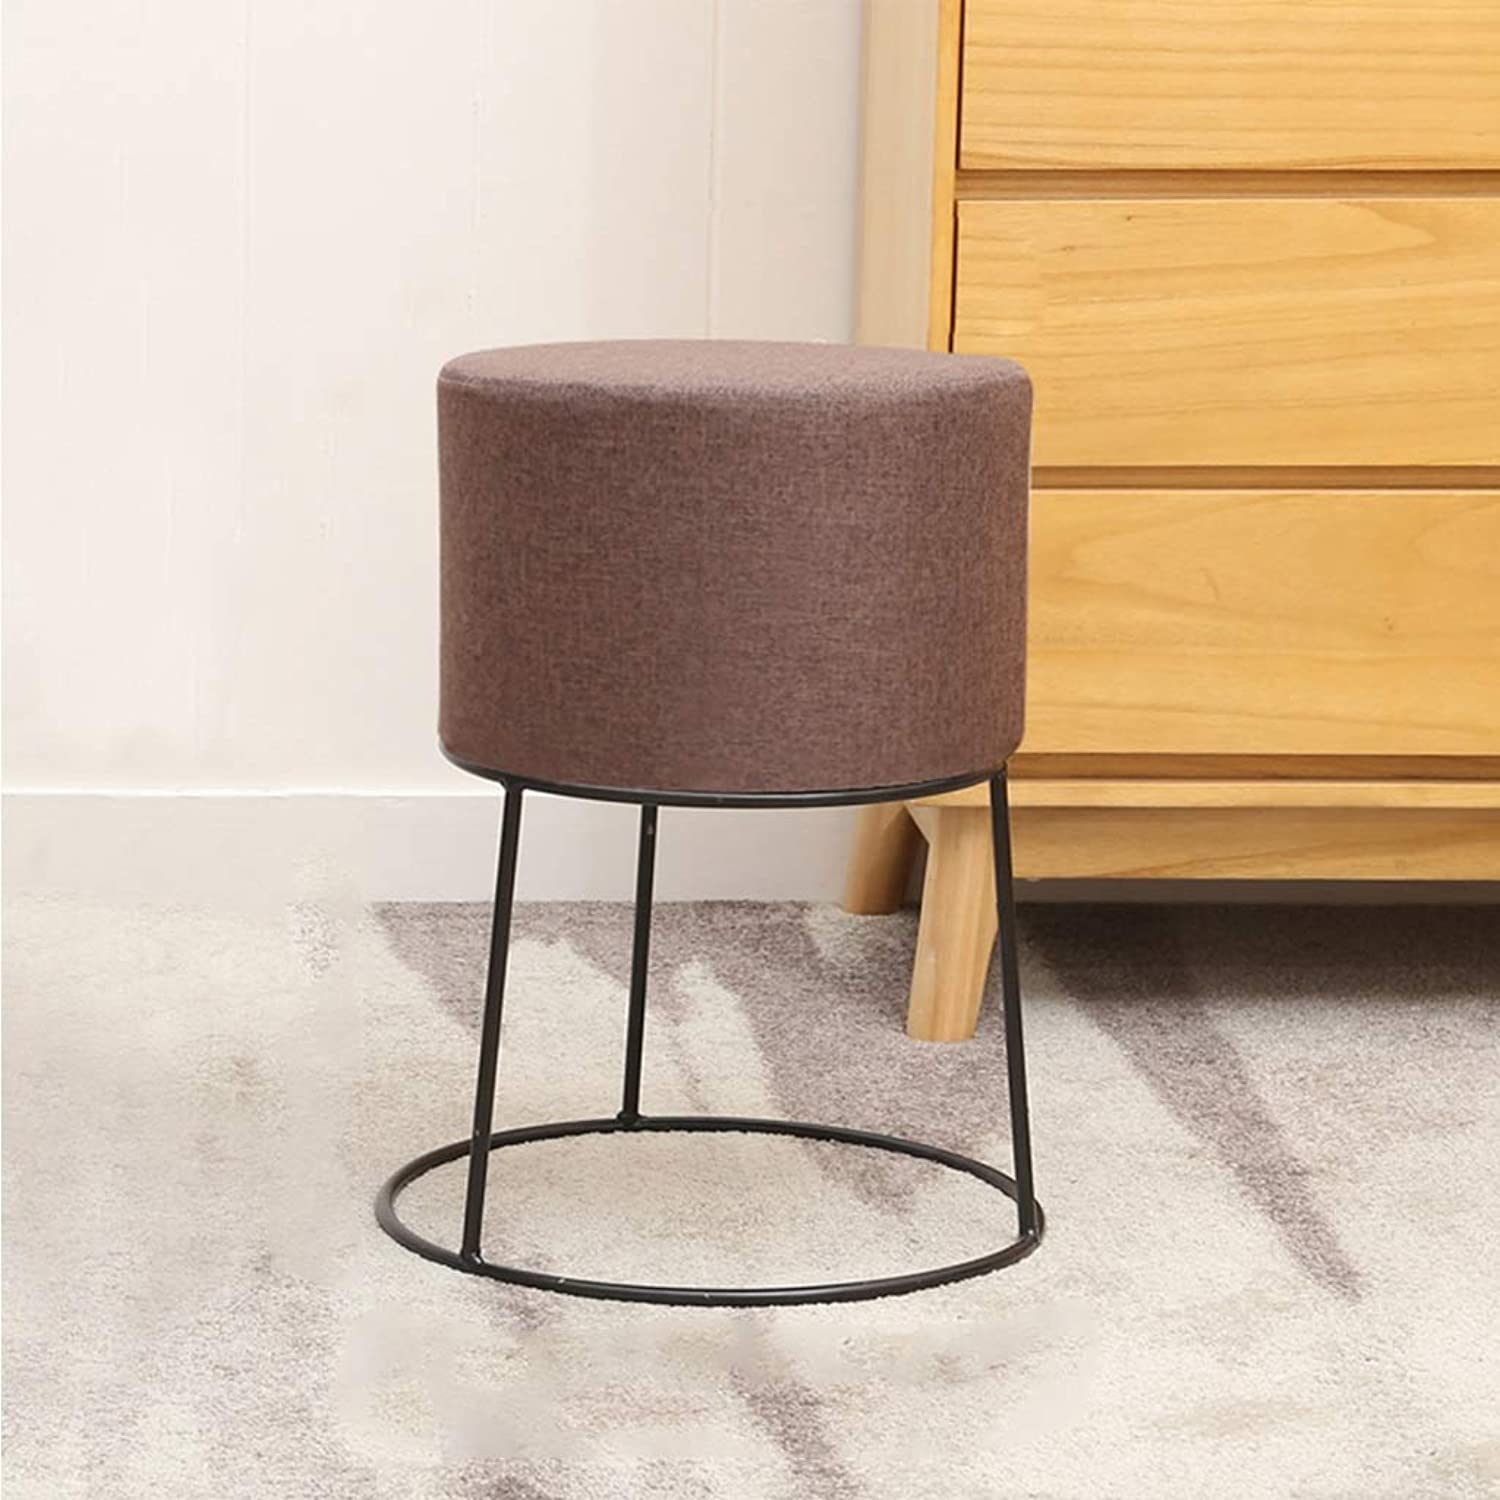 Household Bar Small Round Stool Modern Simple Cotton Seat Tea Table Restaurant Creative Chair Soft and Comfortable 0525A (color   D, Size   45cm Height)